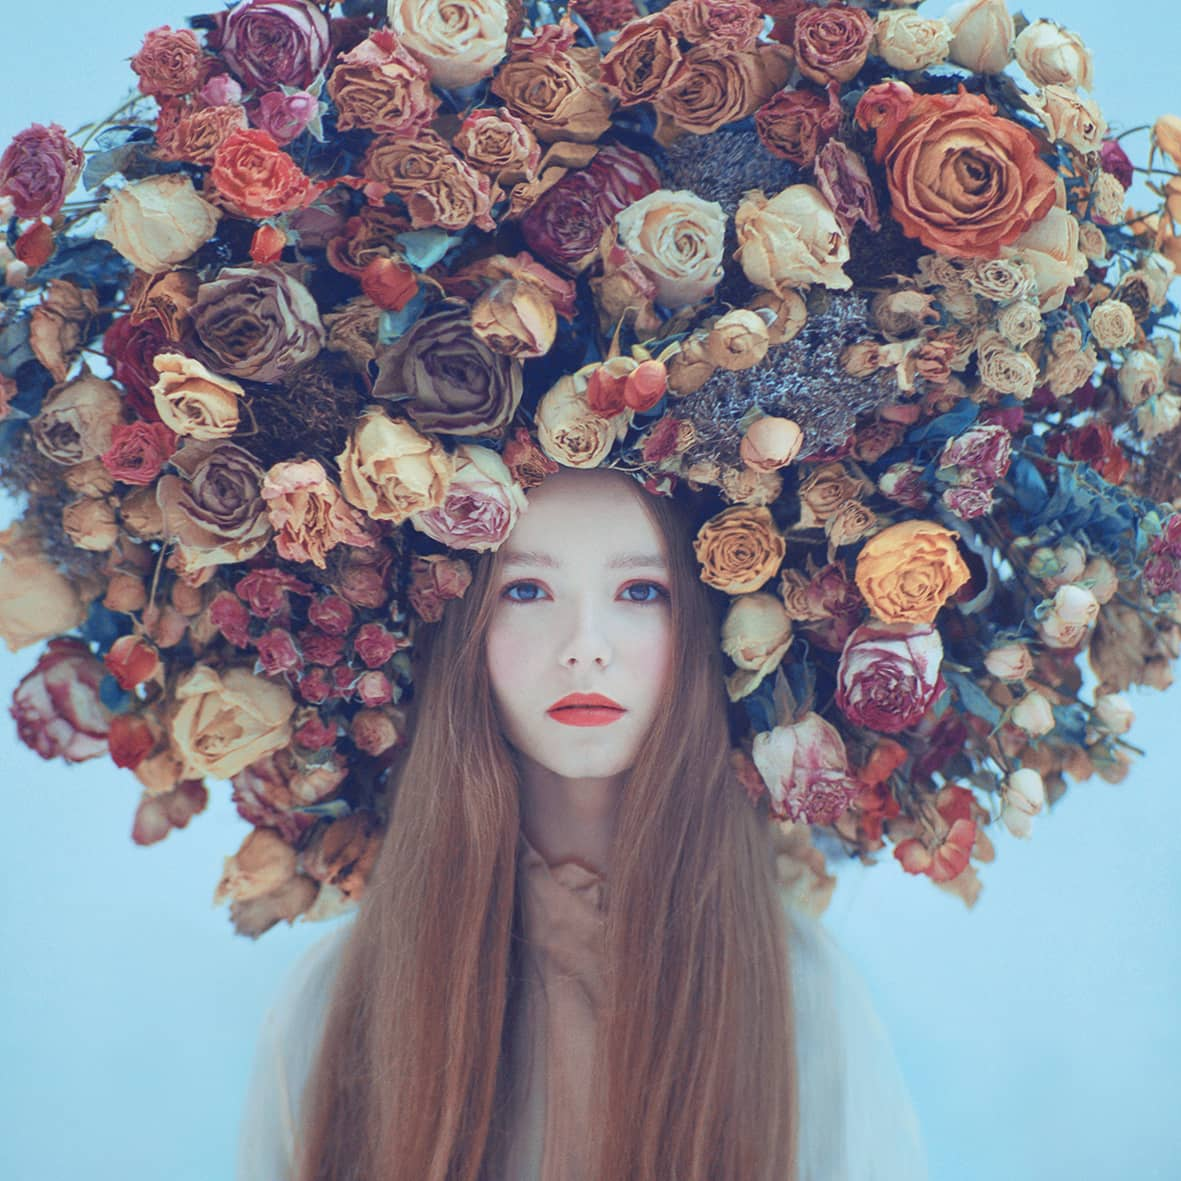 https://thesubmarine.it/wp-content/uploads/2018/03/riaperture-Oleg_Oprisco.jpg